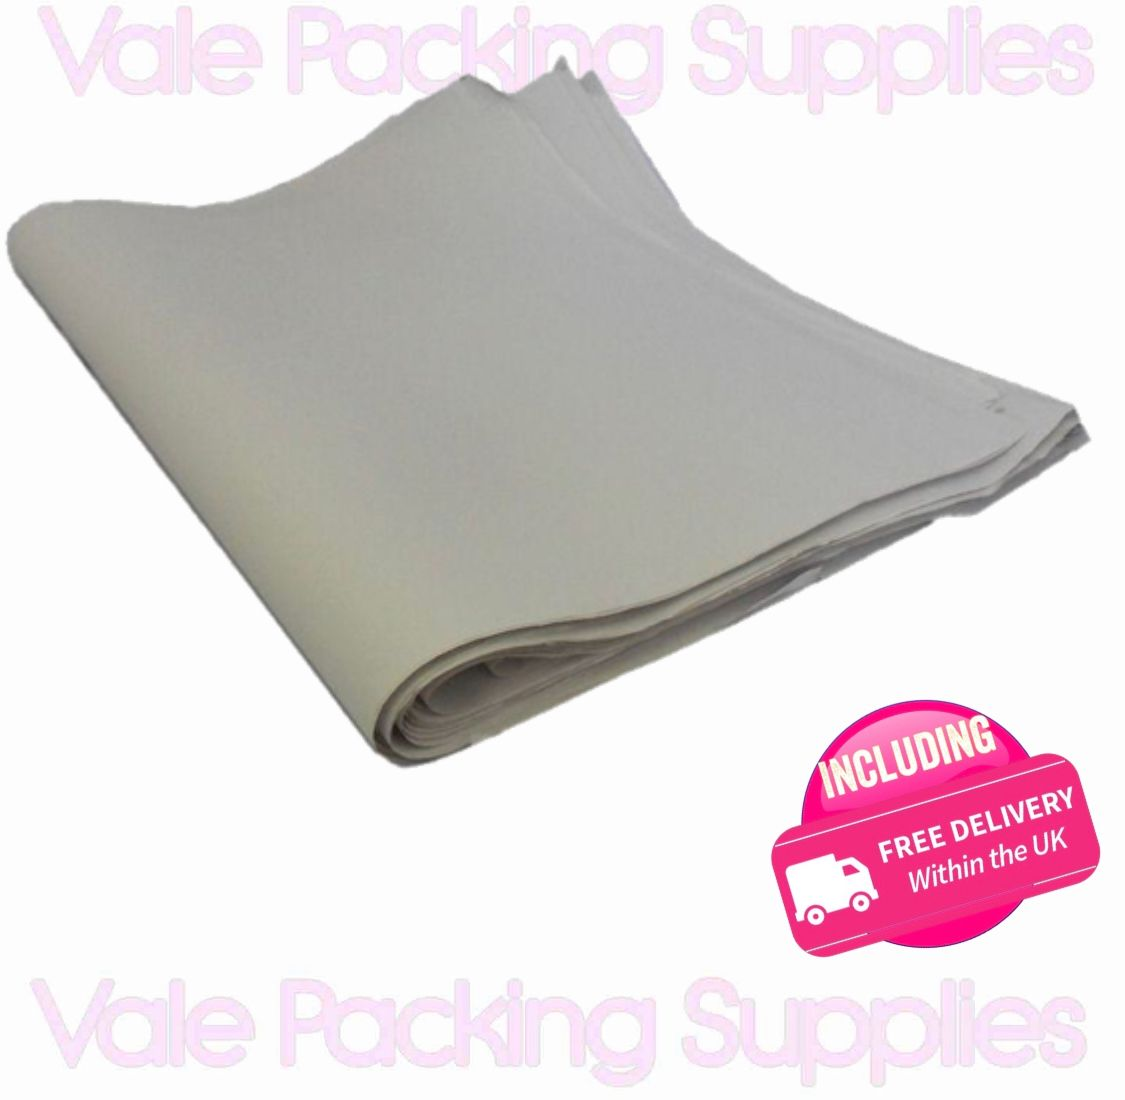 \white folded packaging newspaper on a white background with pink delivery sign and a vale packing supplies logo\